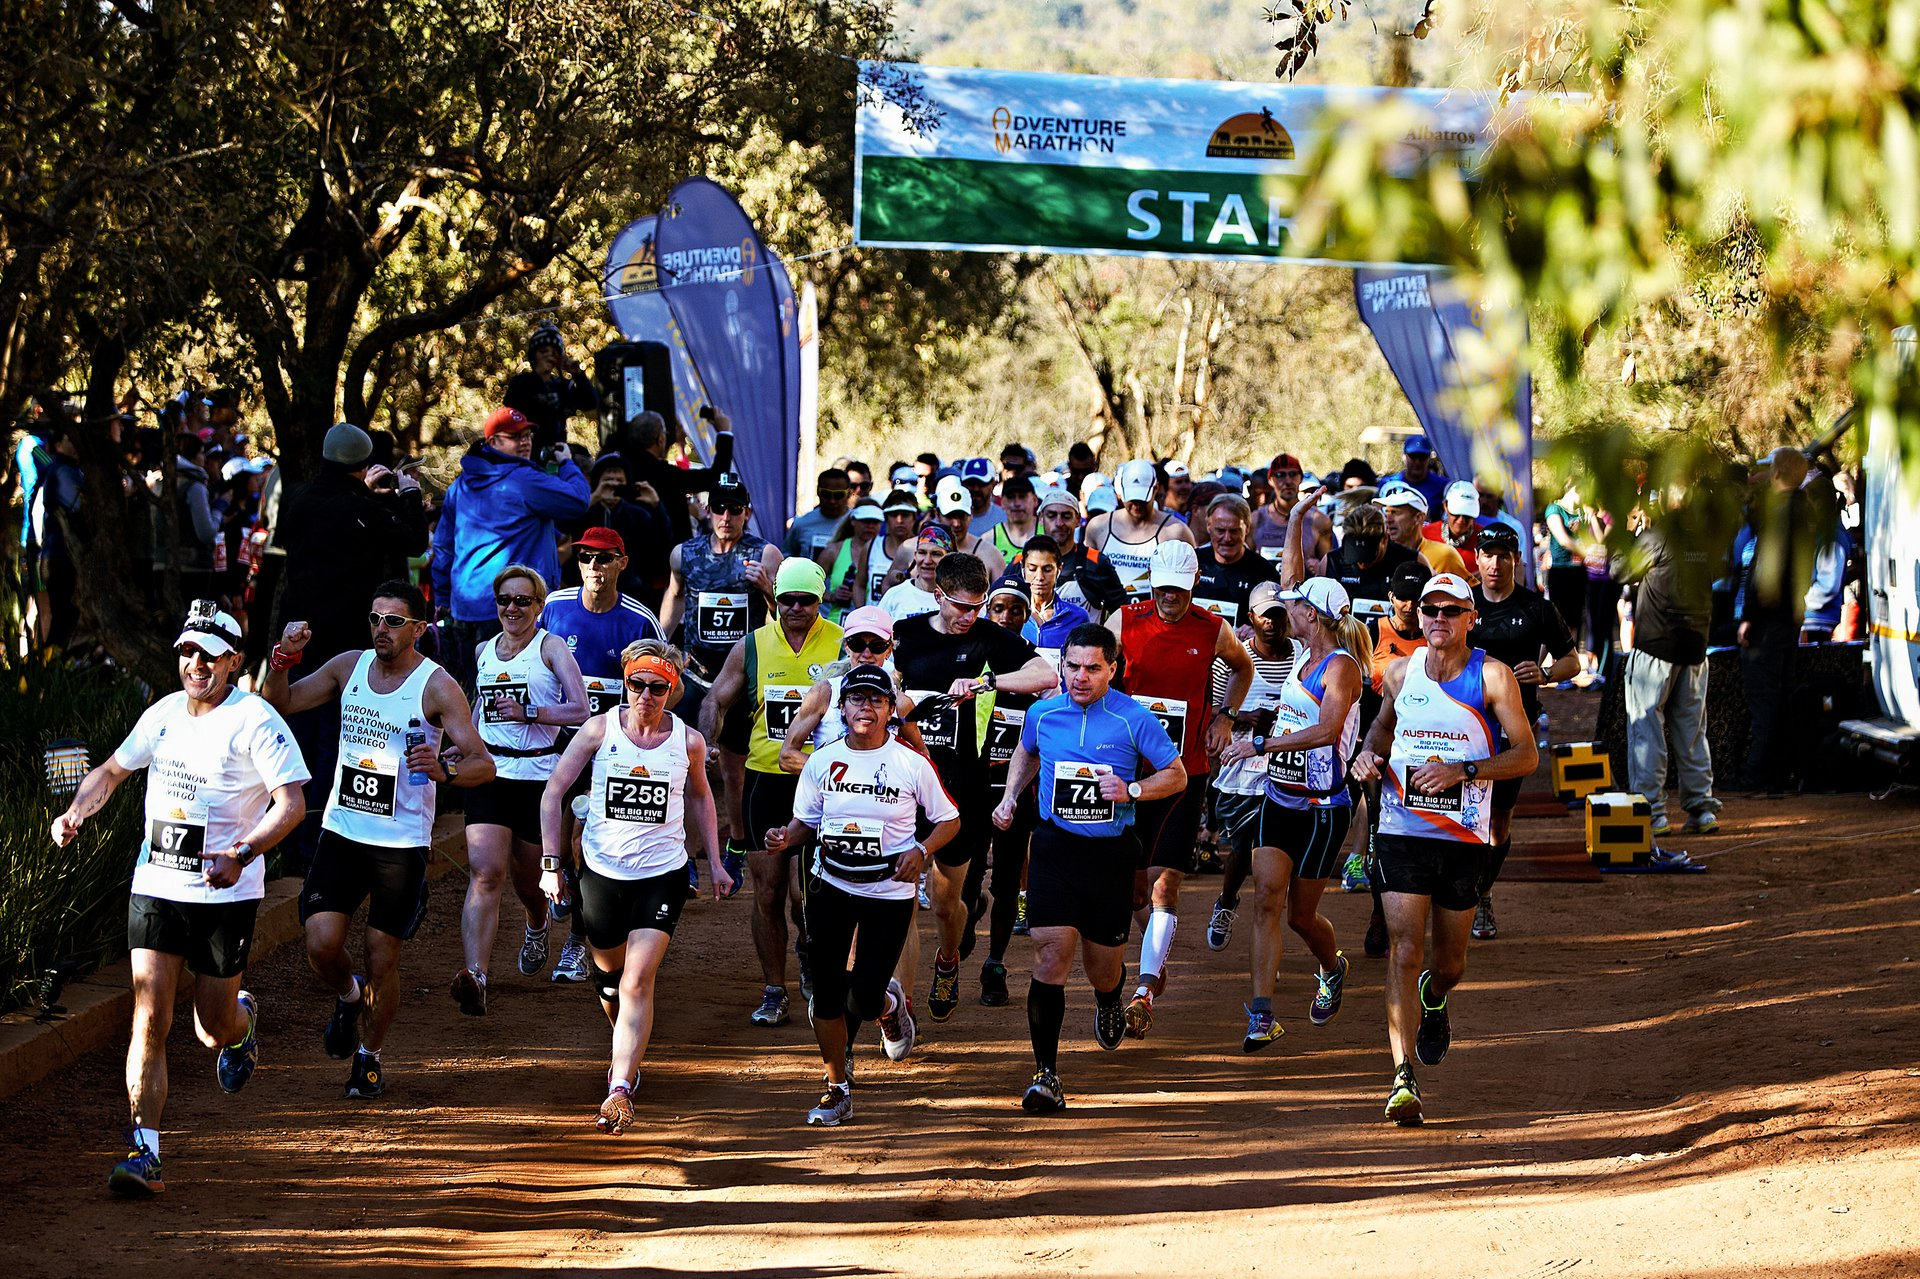 Big Five Marathon in South Africa 2019 - Best Time